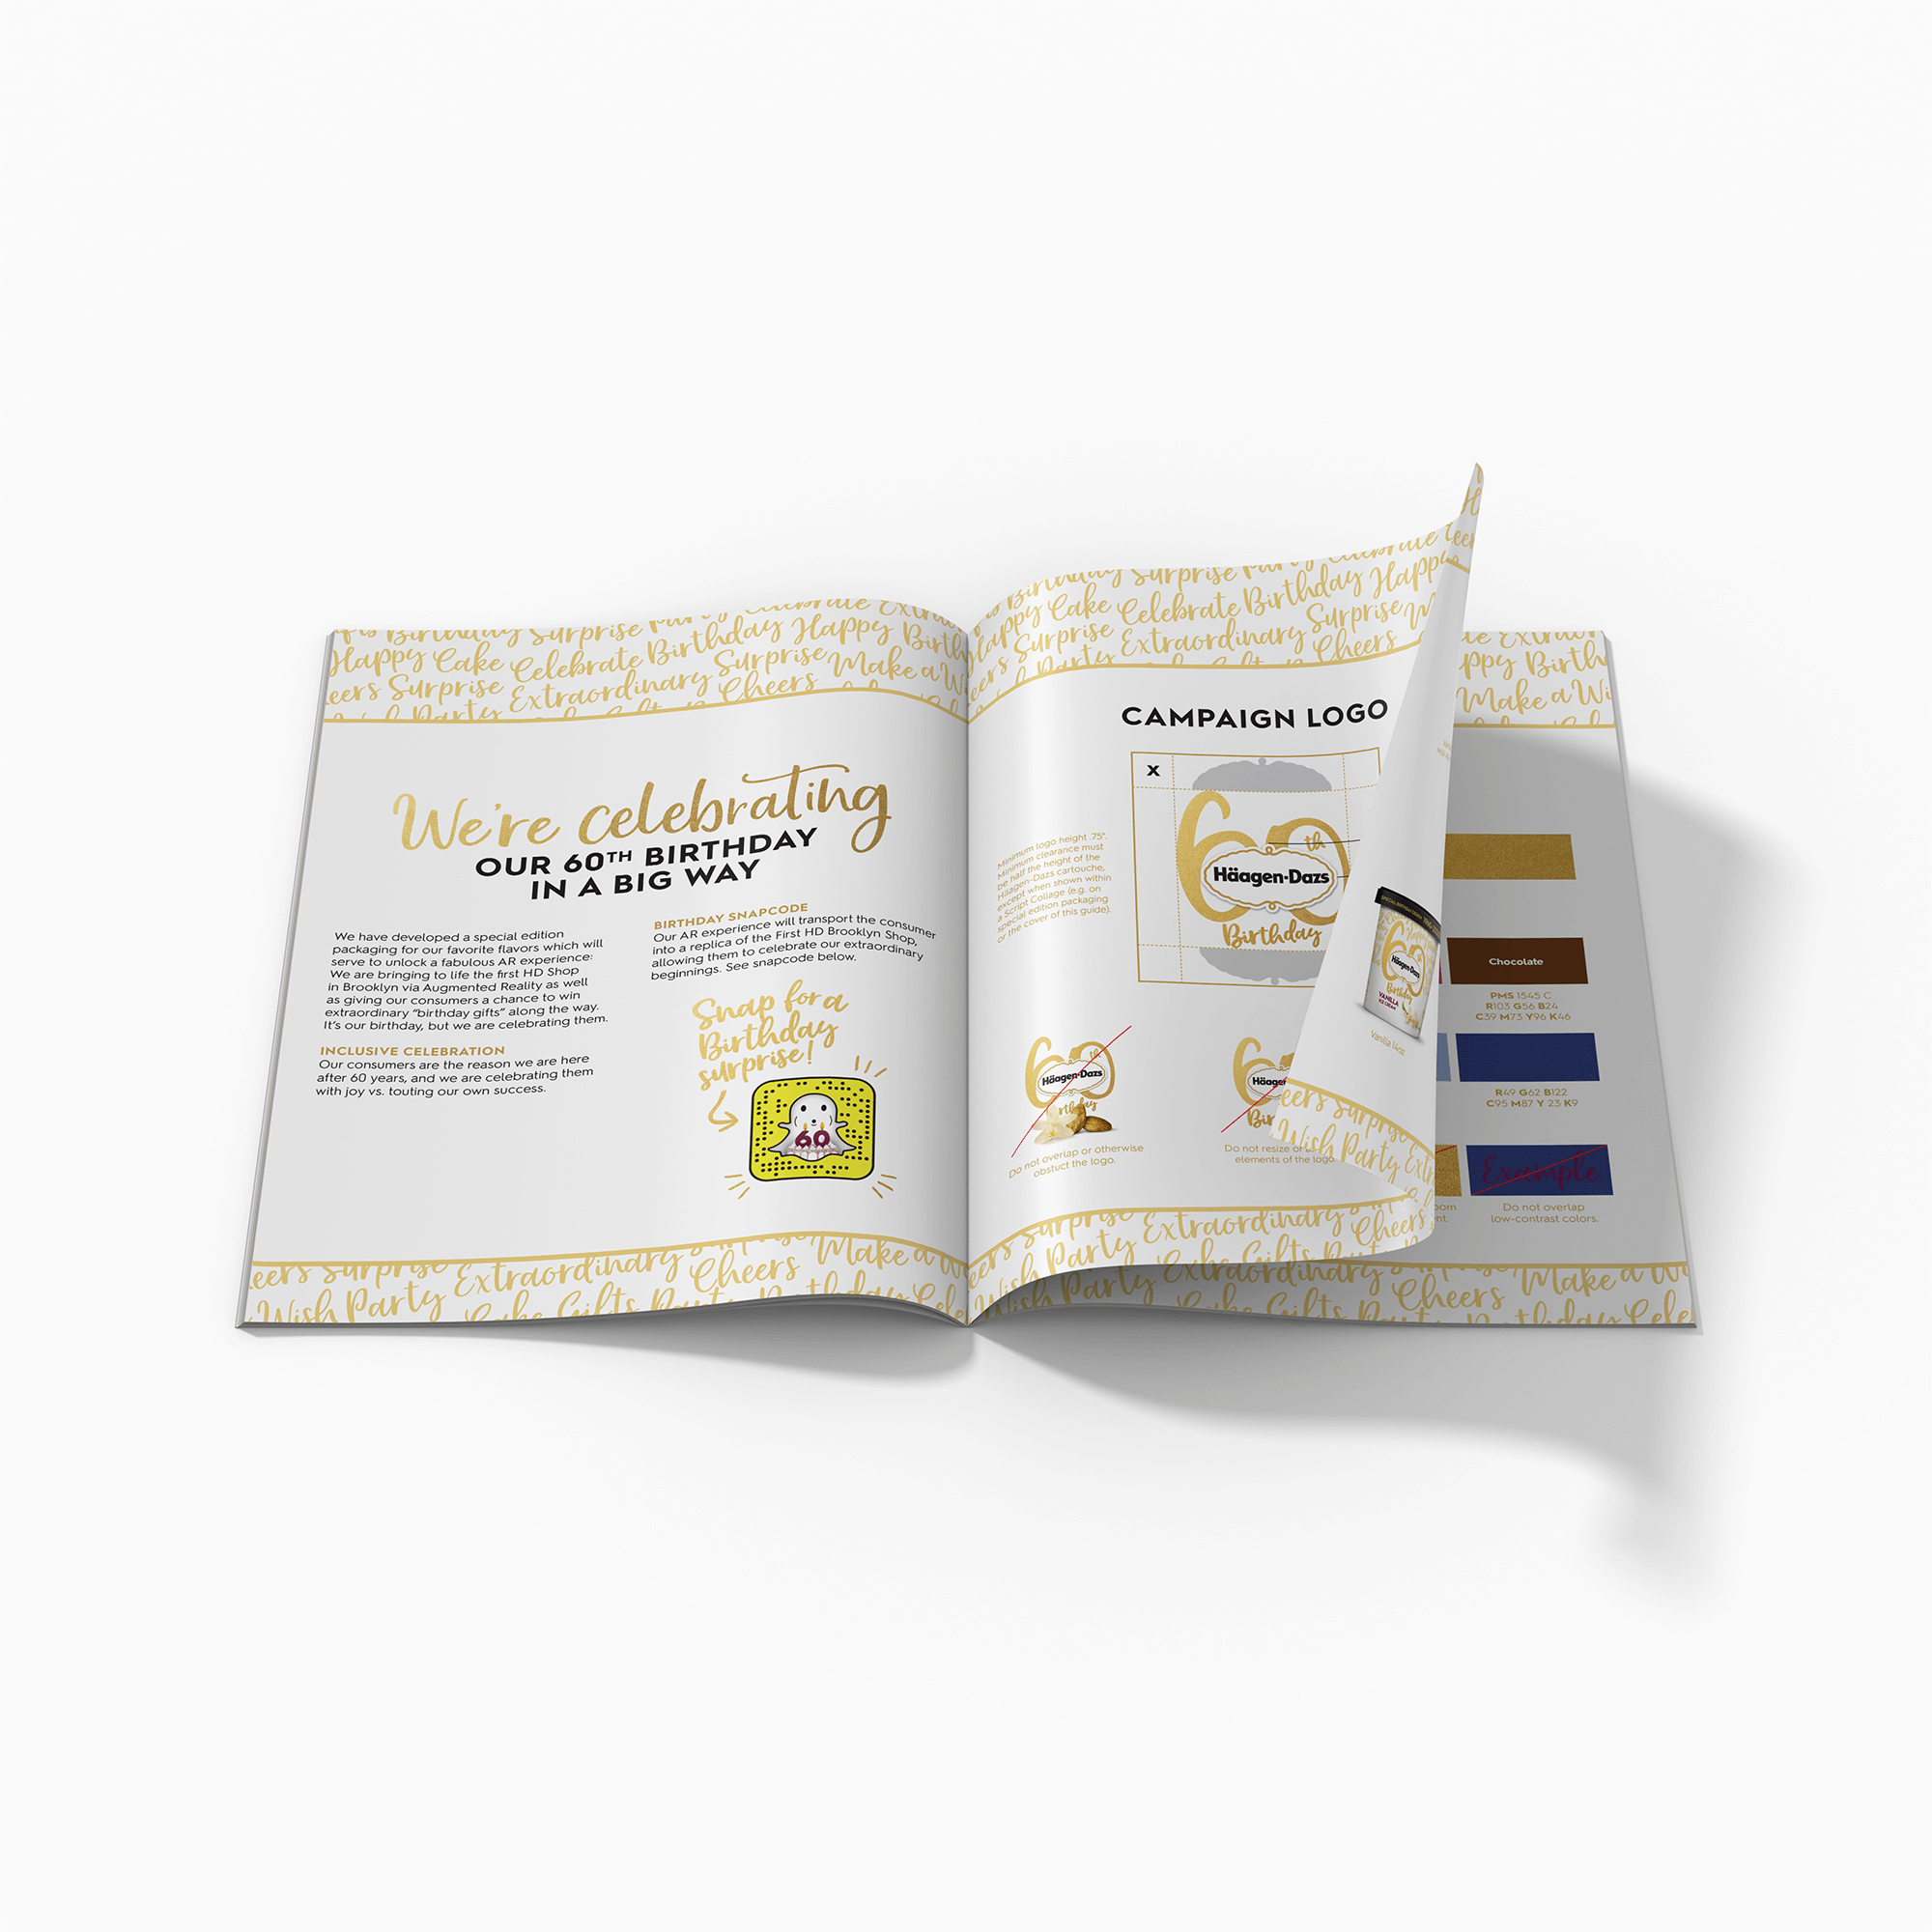 As lead agency for this integrated campaign, Alcone kept other agencies on point with a style guide for consistent use of brand assets.